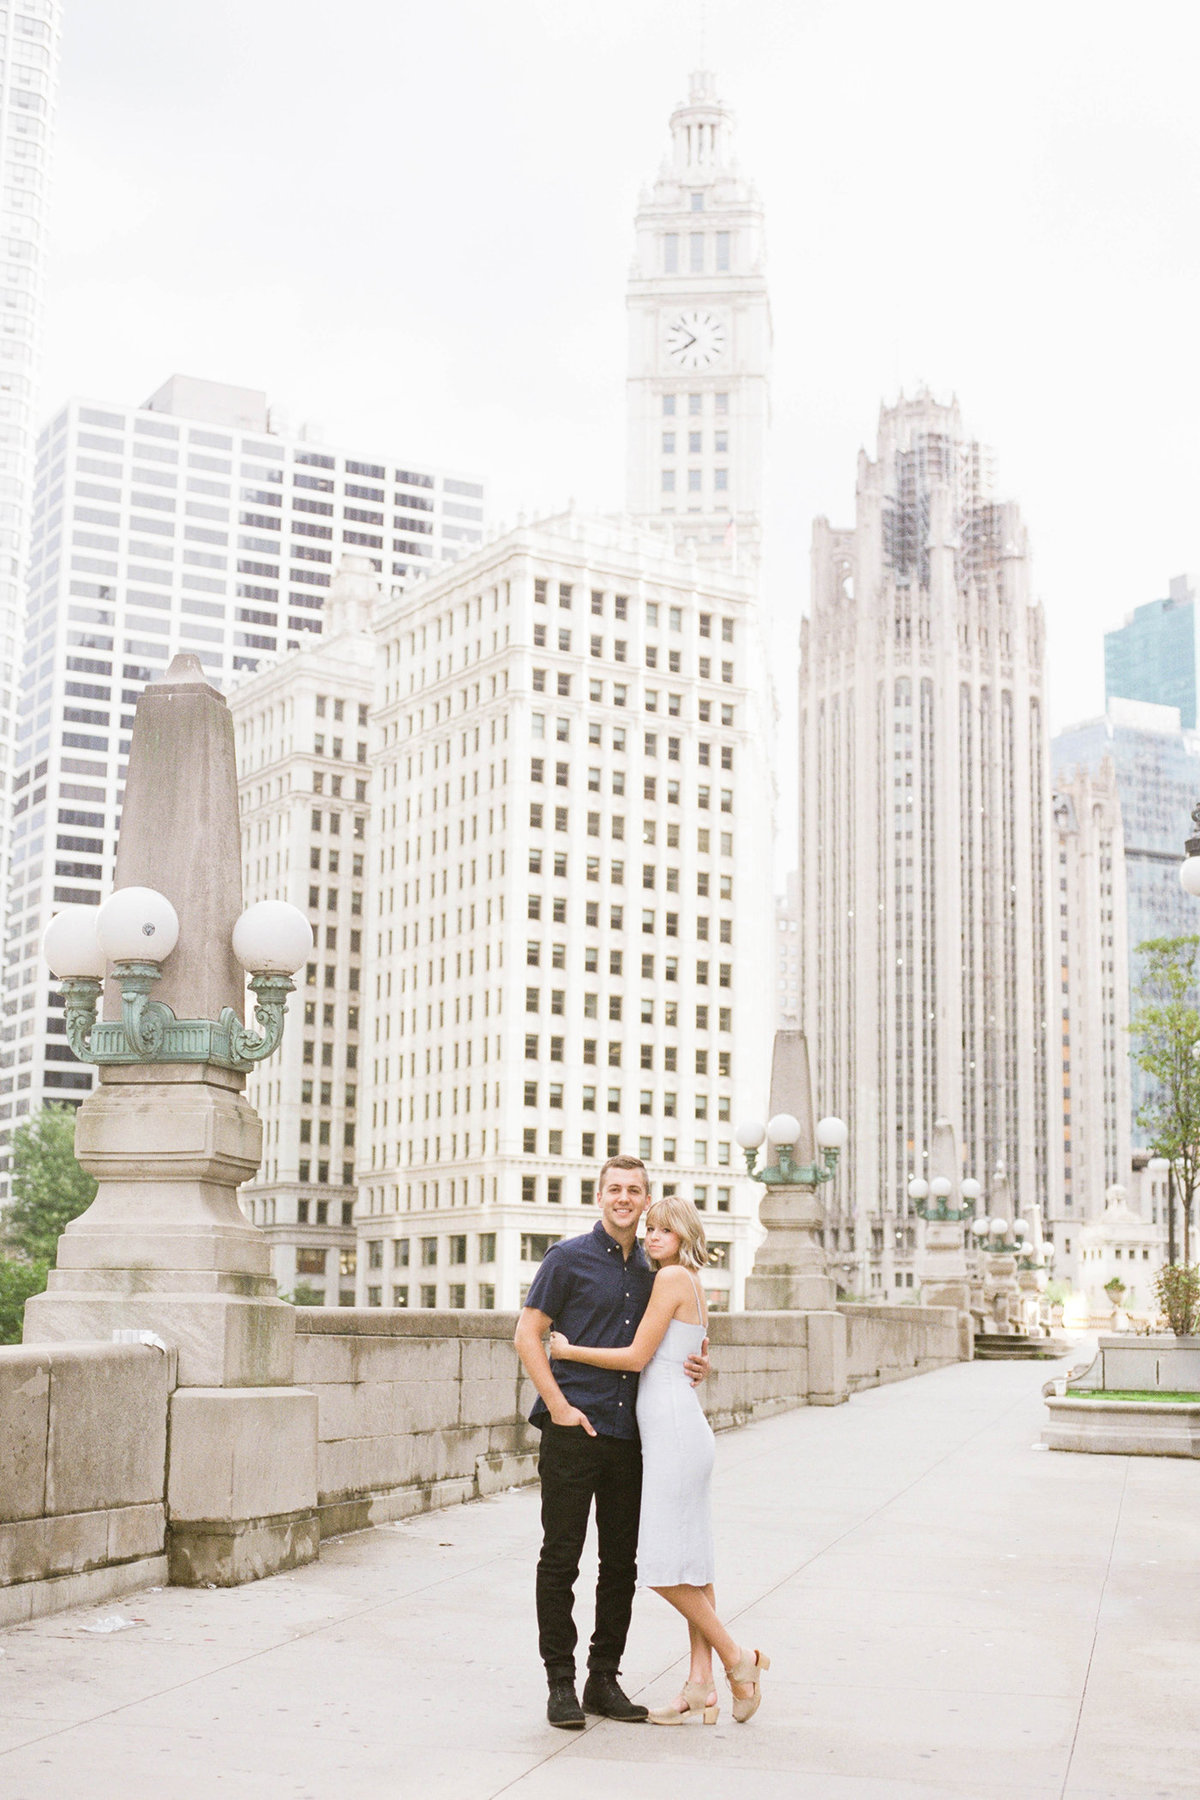 Chicago Wedding Photographer - Fine Art Film Photographer - Sarah Sunstrom - Sam + Morgan - Engagement Session - 1